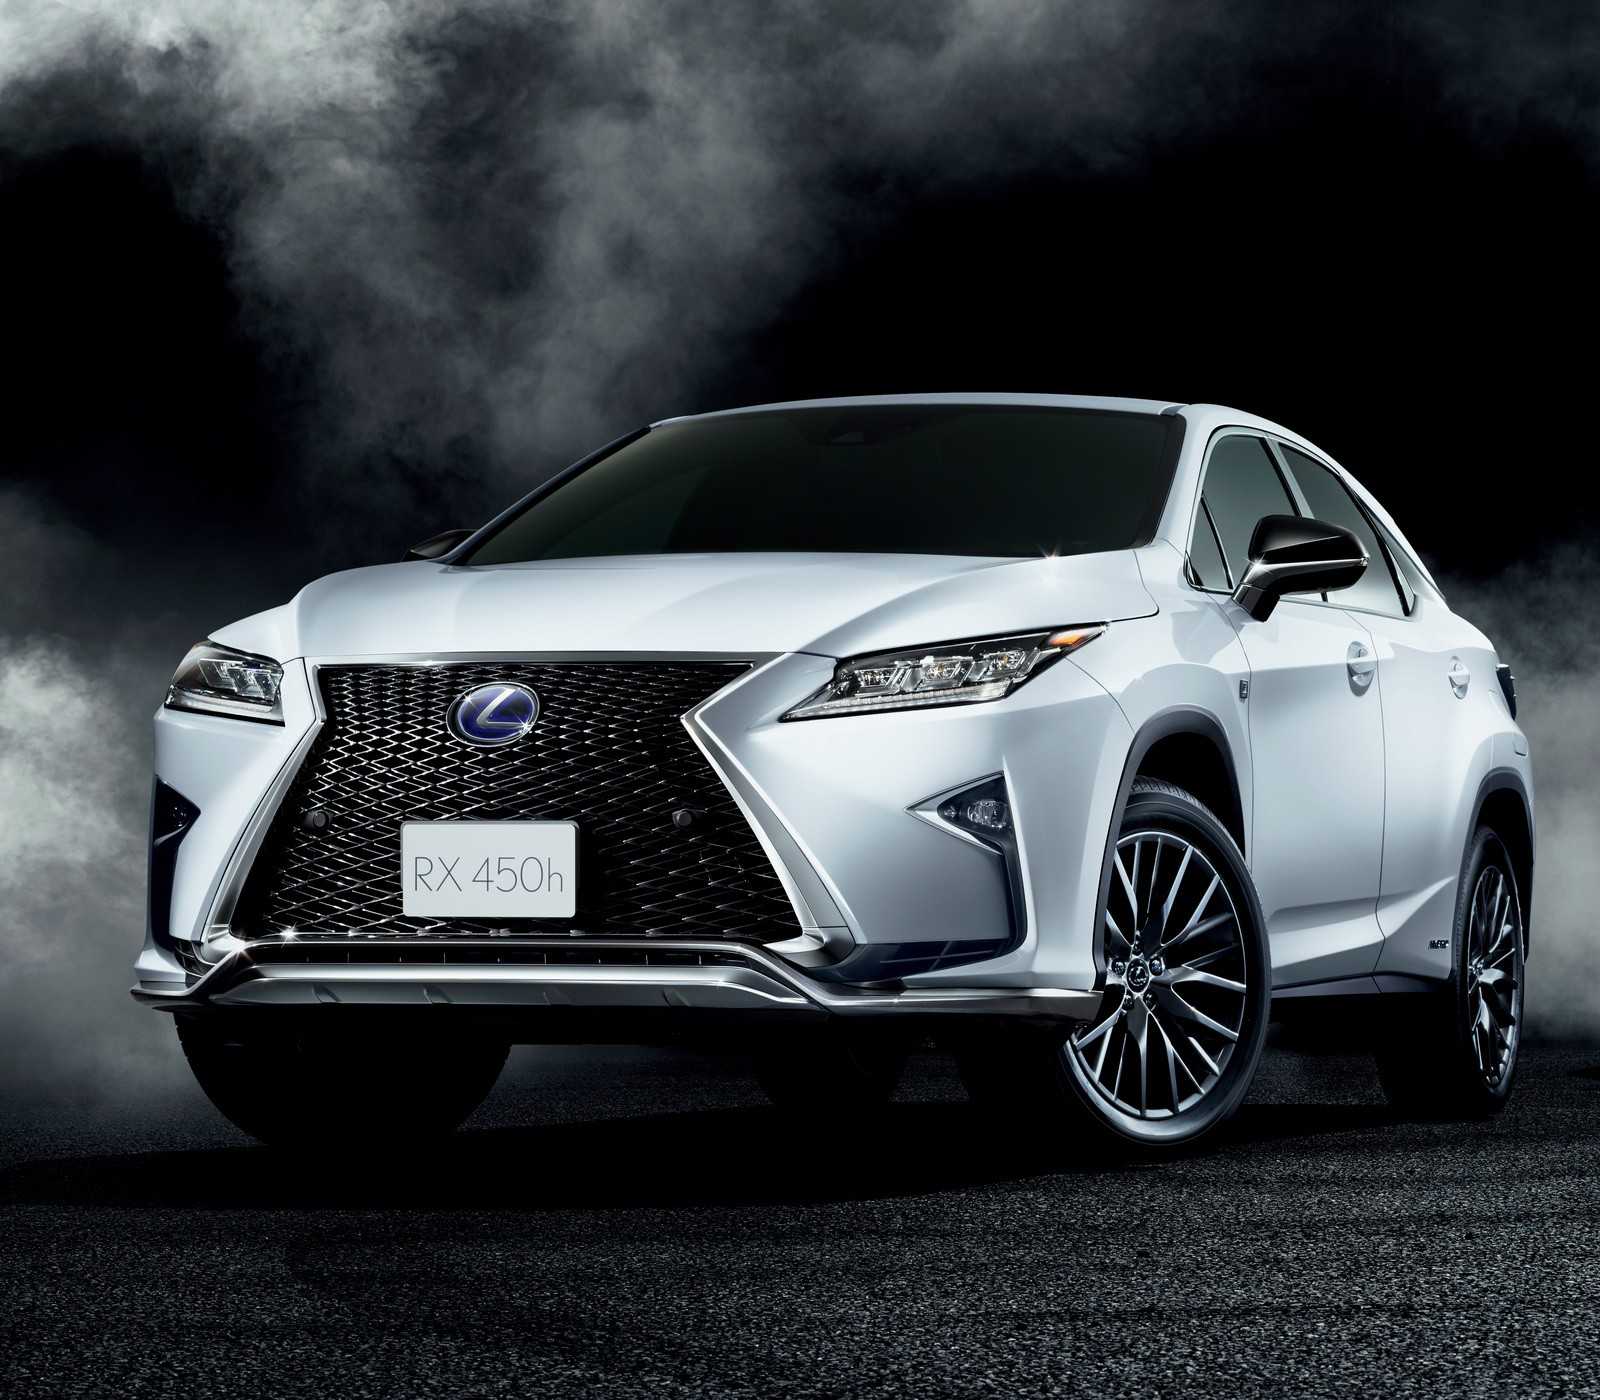 Lexus Rx 450h: All-New Lexus RX Debuts In Japan With 2-Liter Turbo And